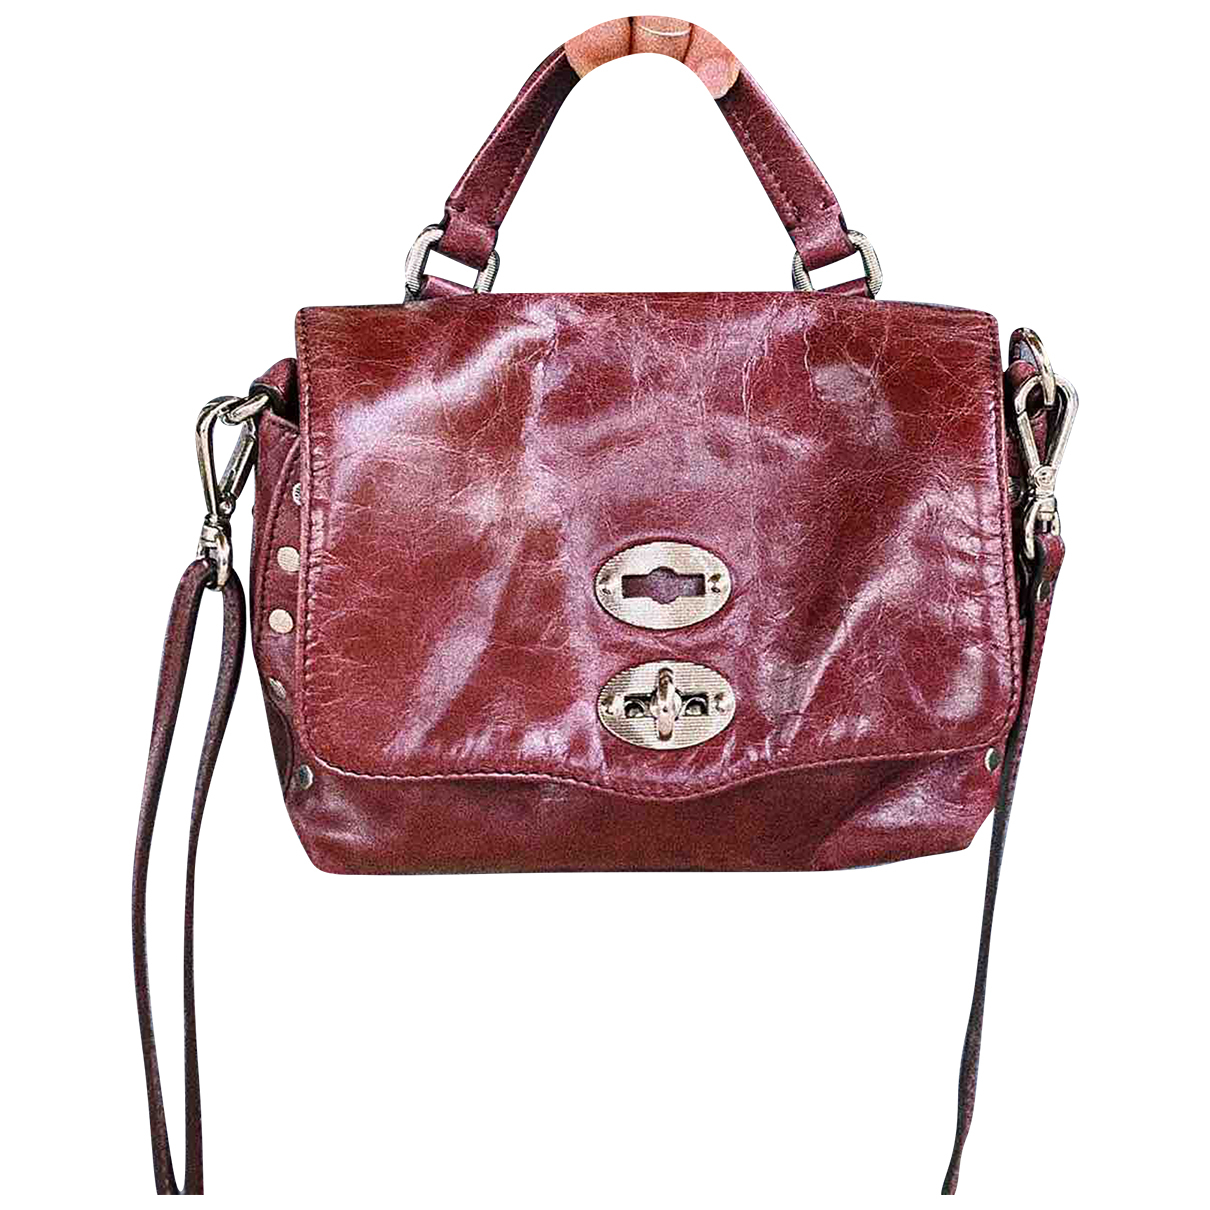 Zanellato N Burgundy Leather handbag for Women N